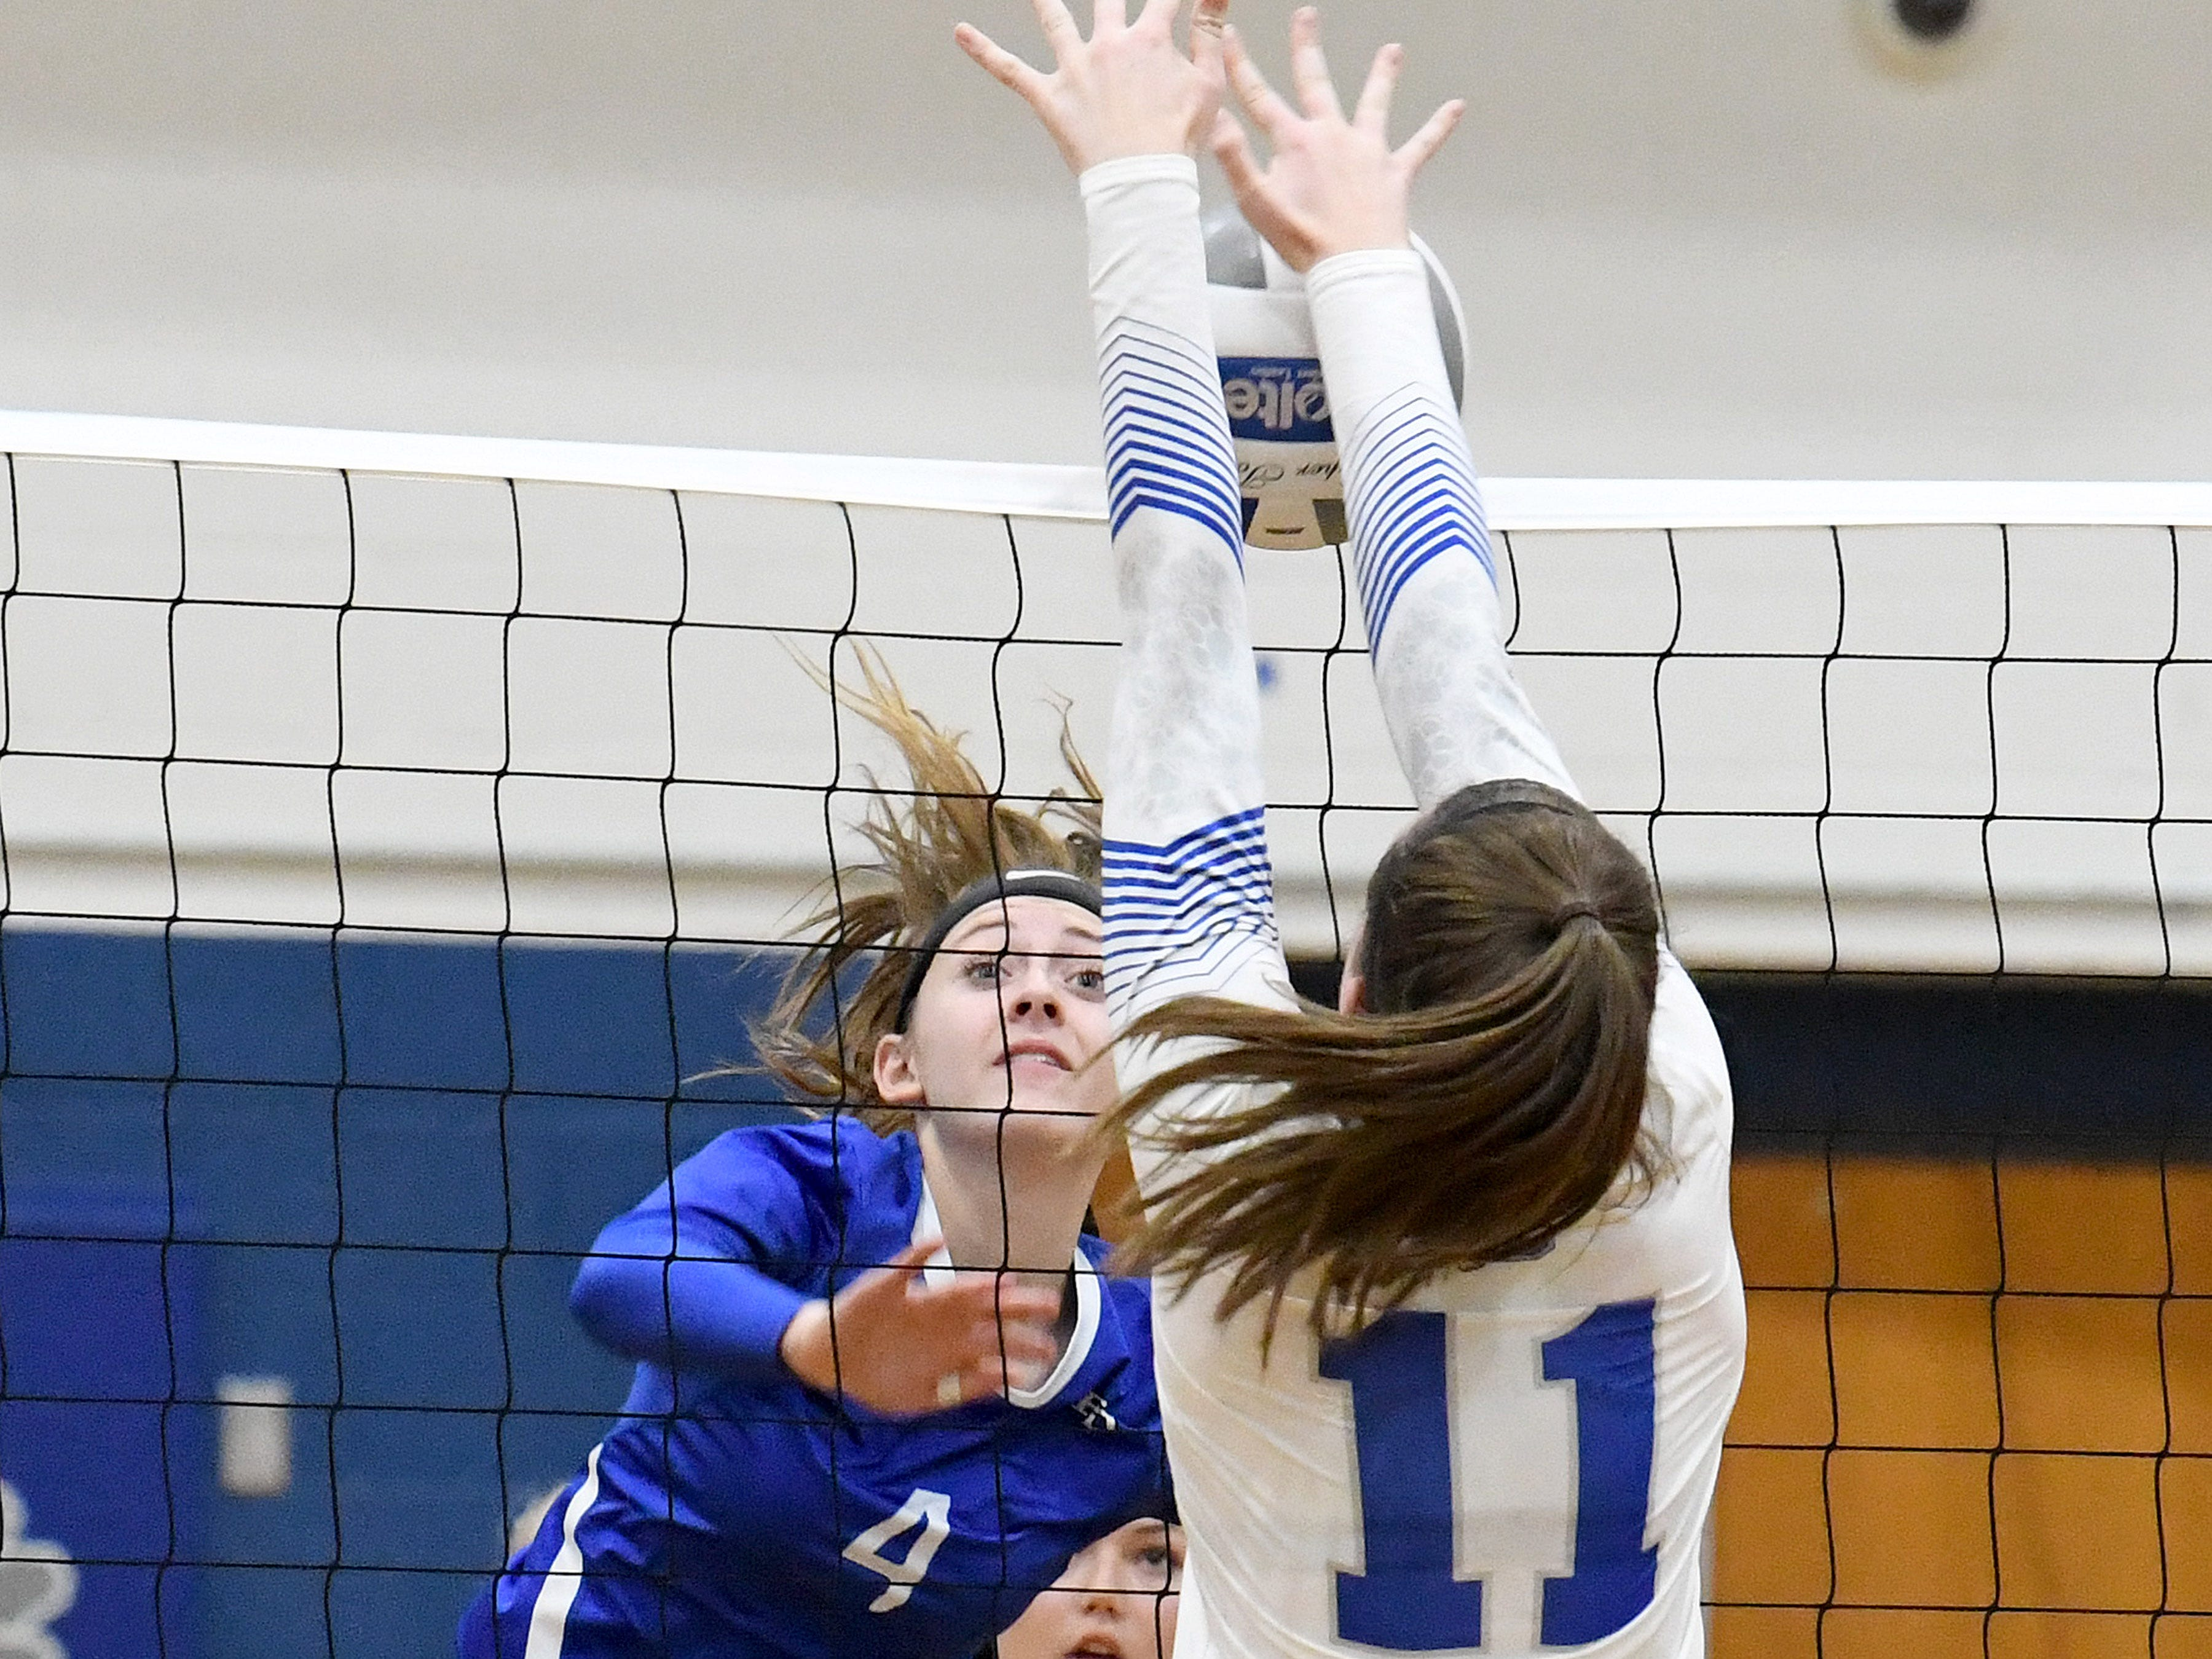 Fort Defiance's Leilani Goggin spikes the ball as Rockbridge County's McKenna Mohler tries to block at the net during a Region 3C semifinal match played in Lexington on Monday, Nov. 5, 2018.